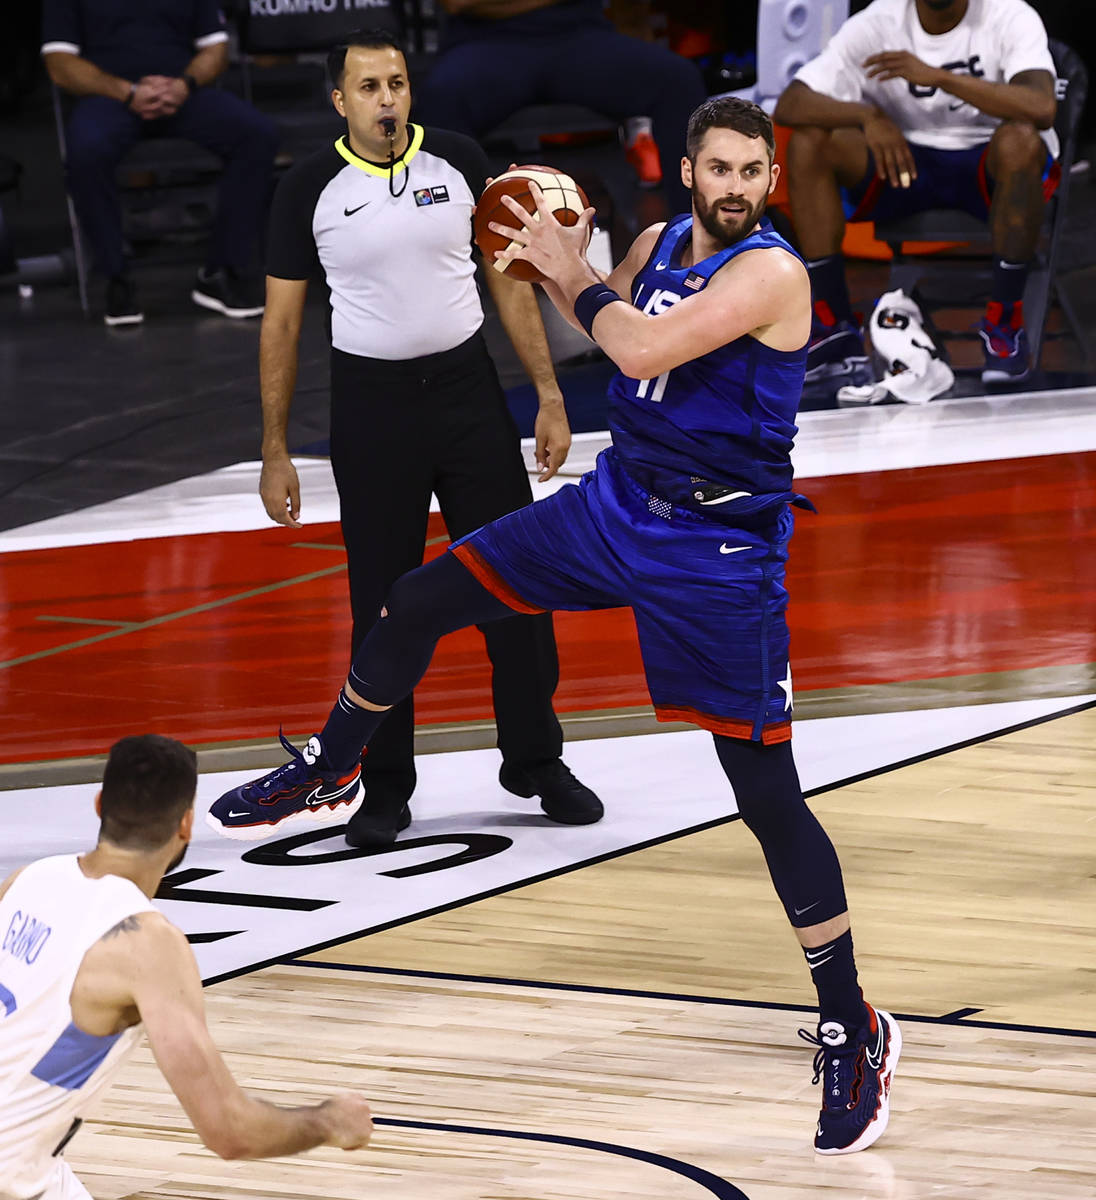 USAÕs Kevin Love (11) grabs a rebound during the second half of an exhibition basketball g ...